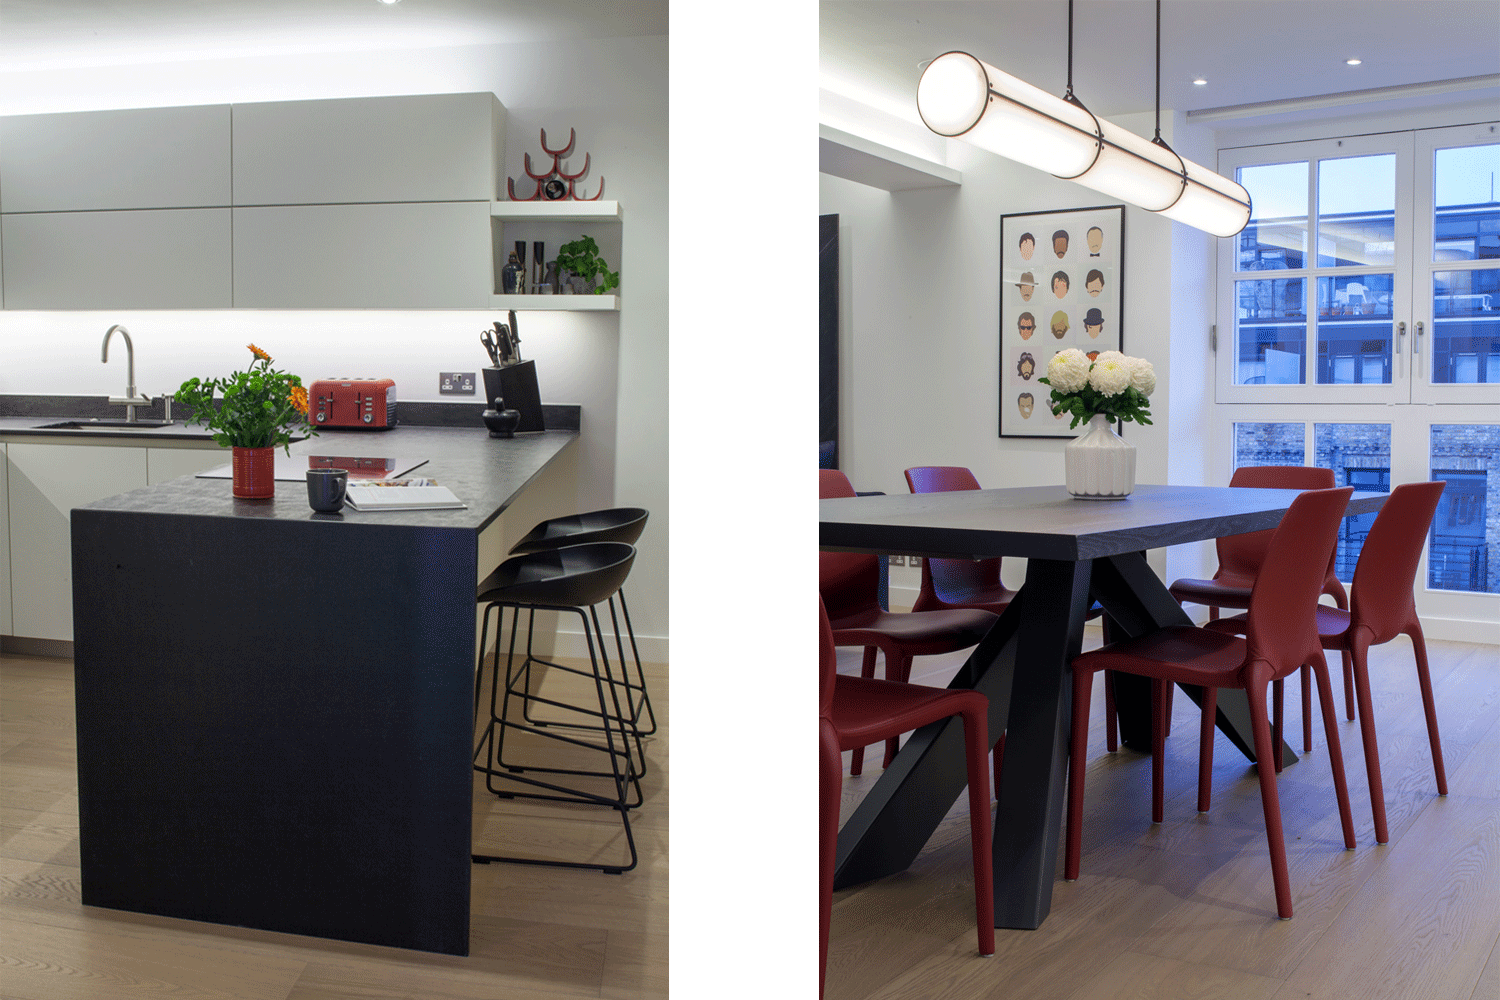 8.-Cassidy_Hughes_Bespoke_Dining_LED_Kitchen_Dining_11